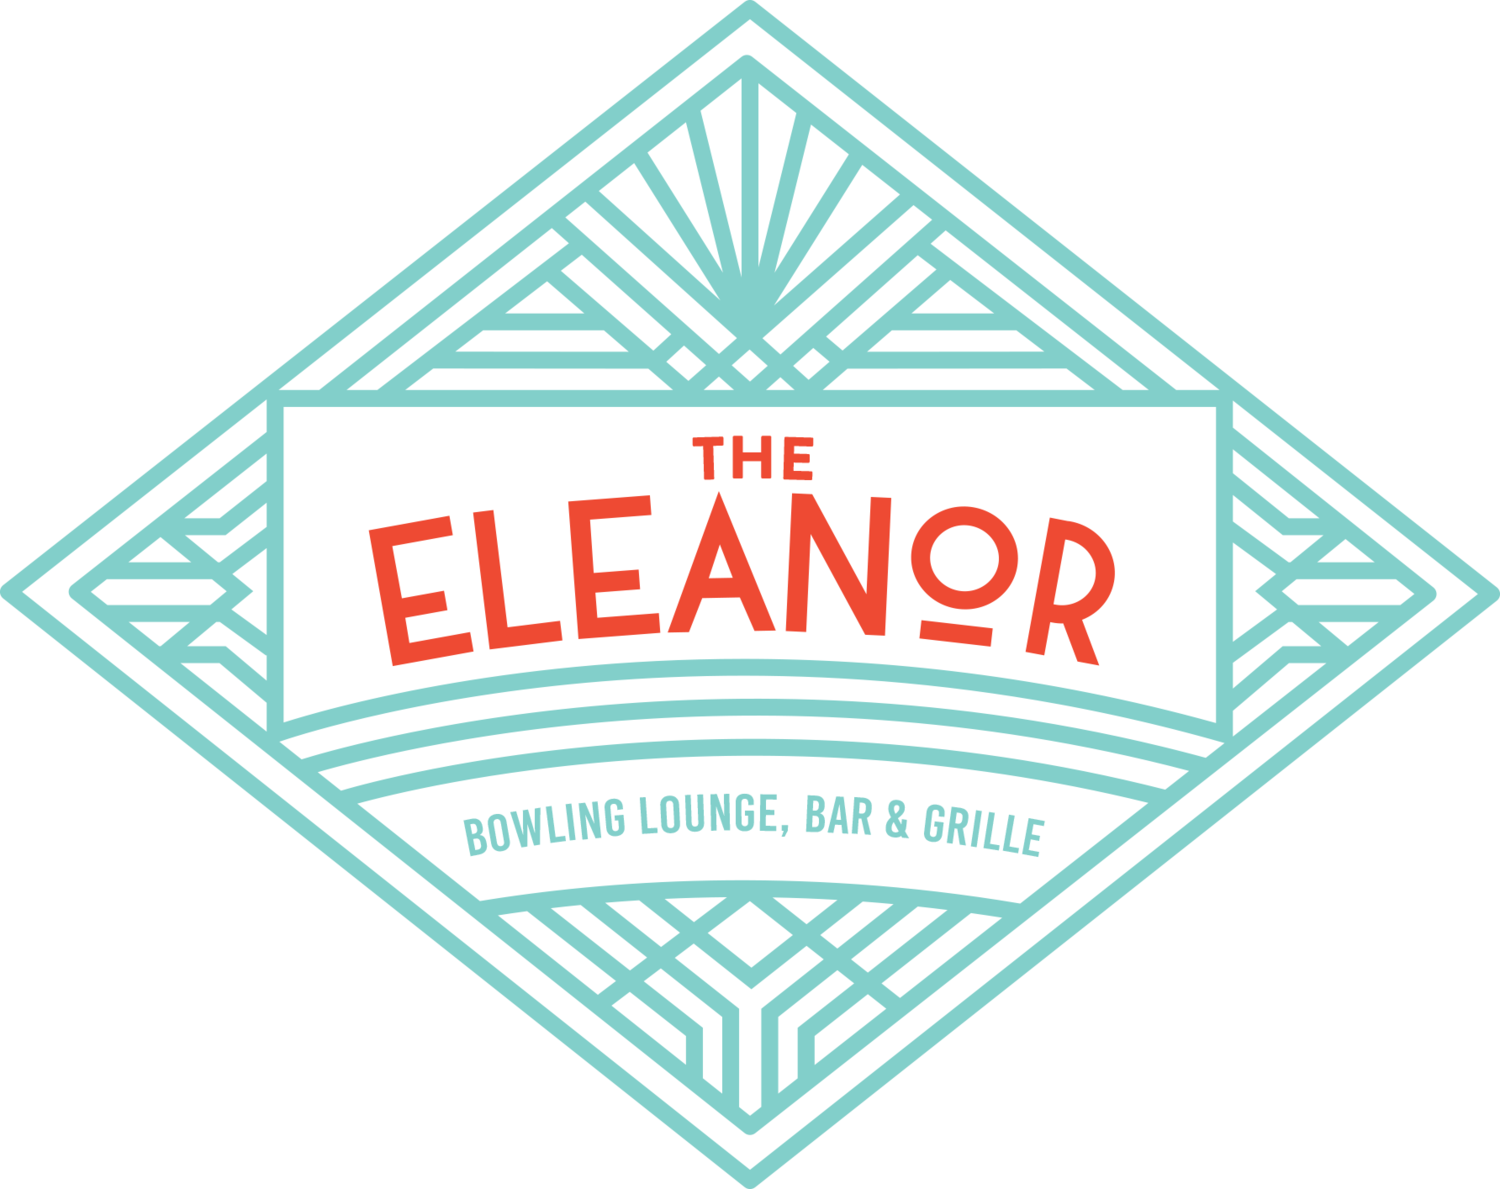 The Eleanor